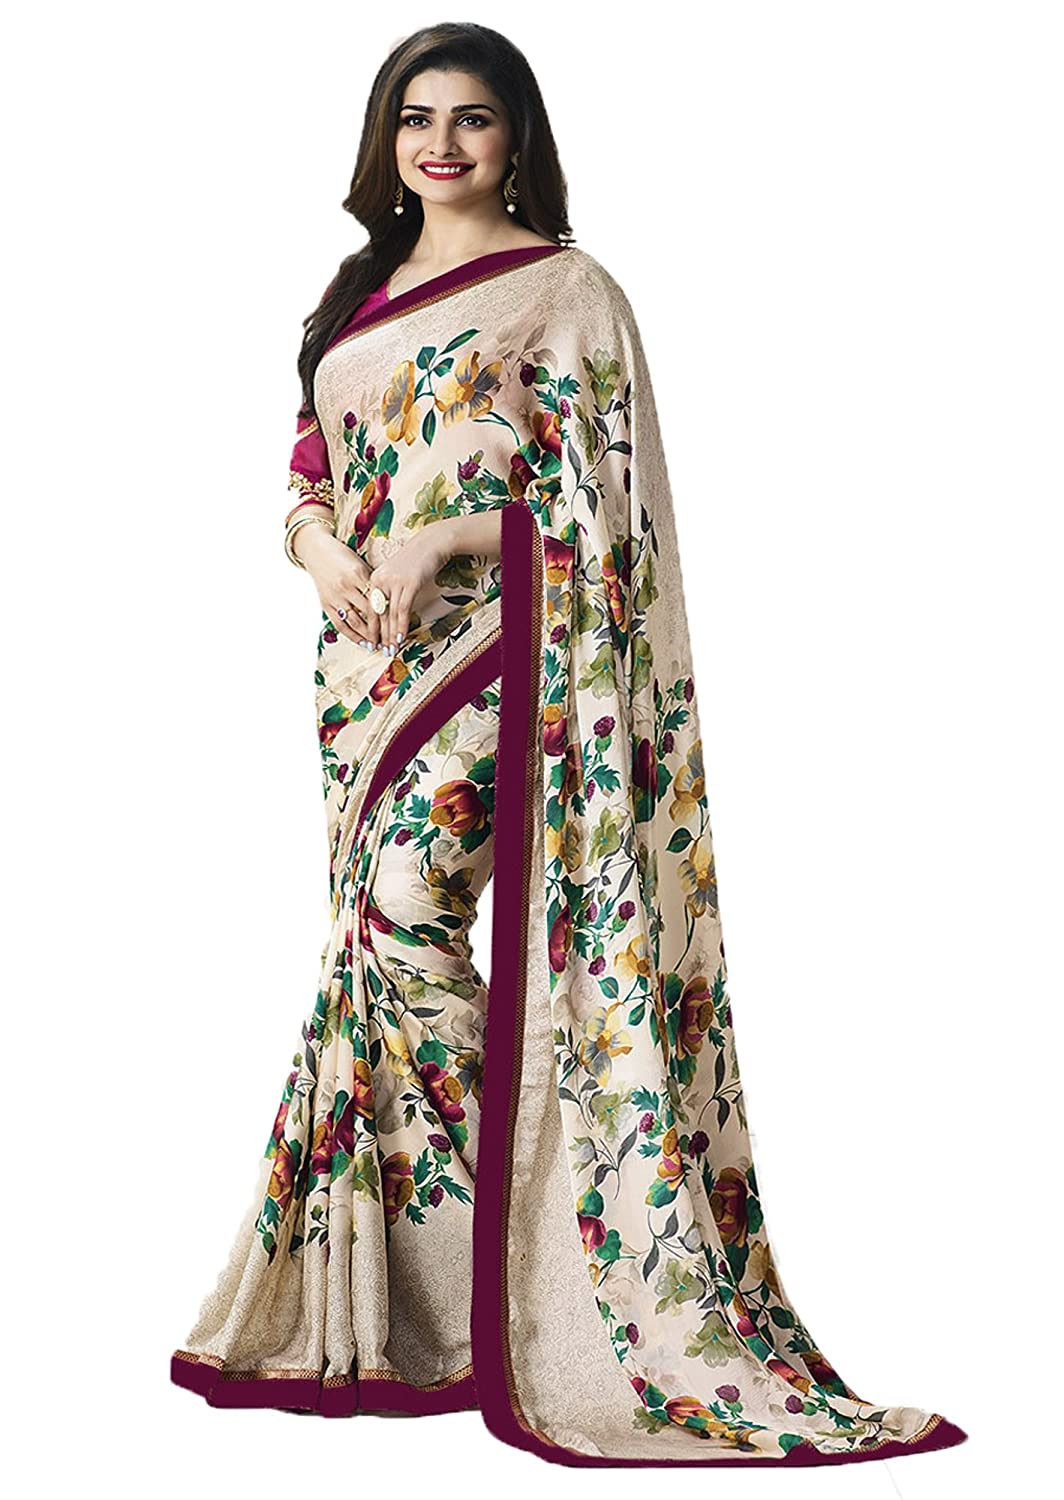 Lajree Designer Women's Clothing Saree Collection in Multi-Coloured Georgette Material For Women Party Wear,Wedding,Casual sarees Offer Latest Design Wear Sarees With Blouse Piece